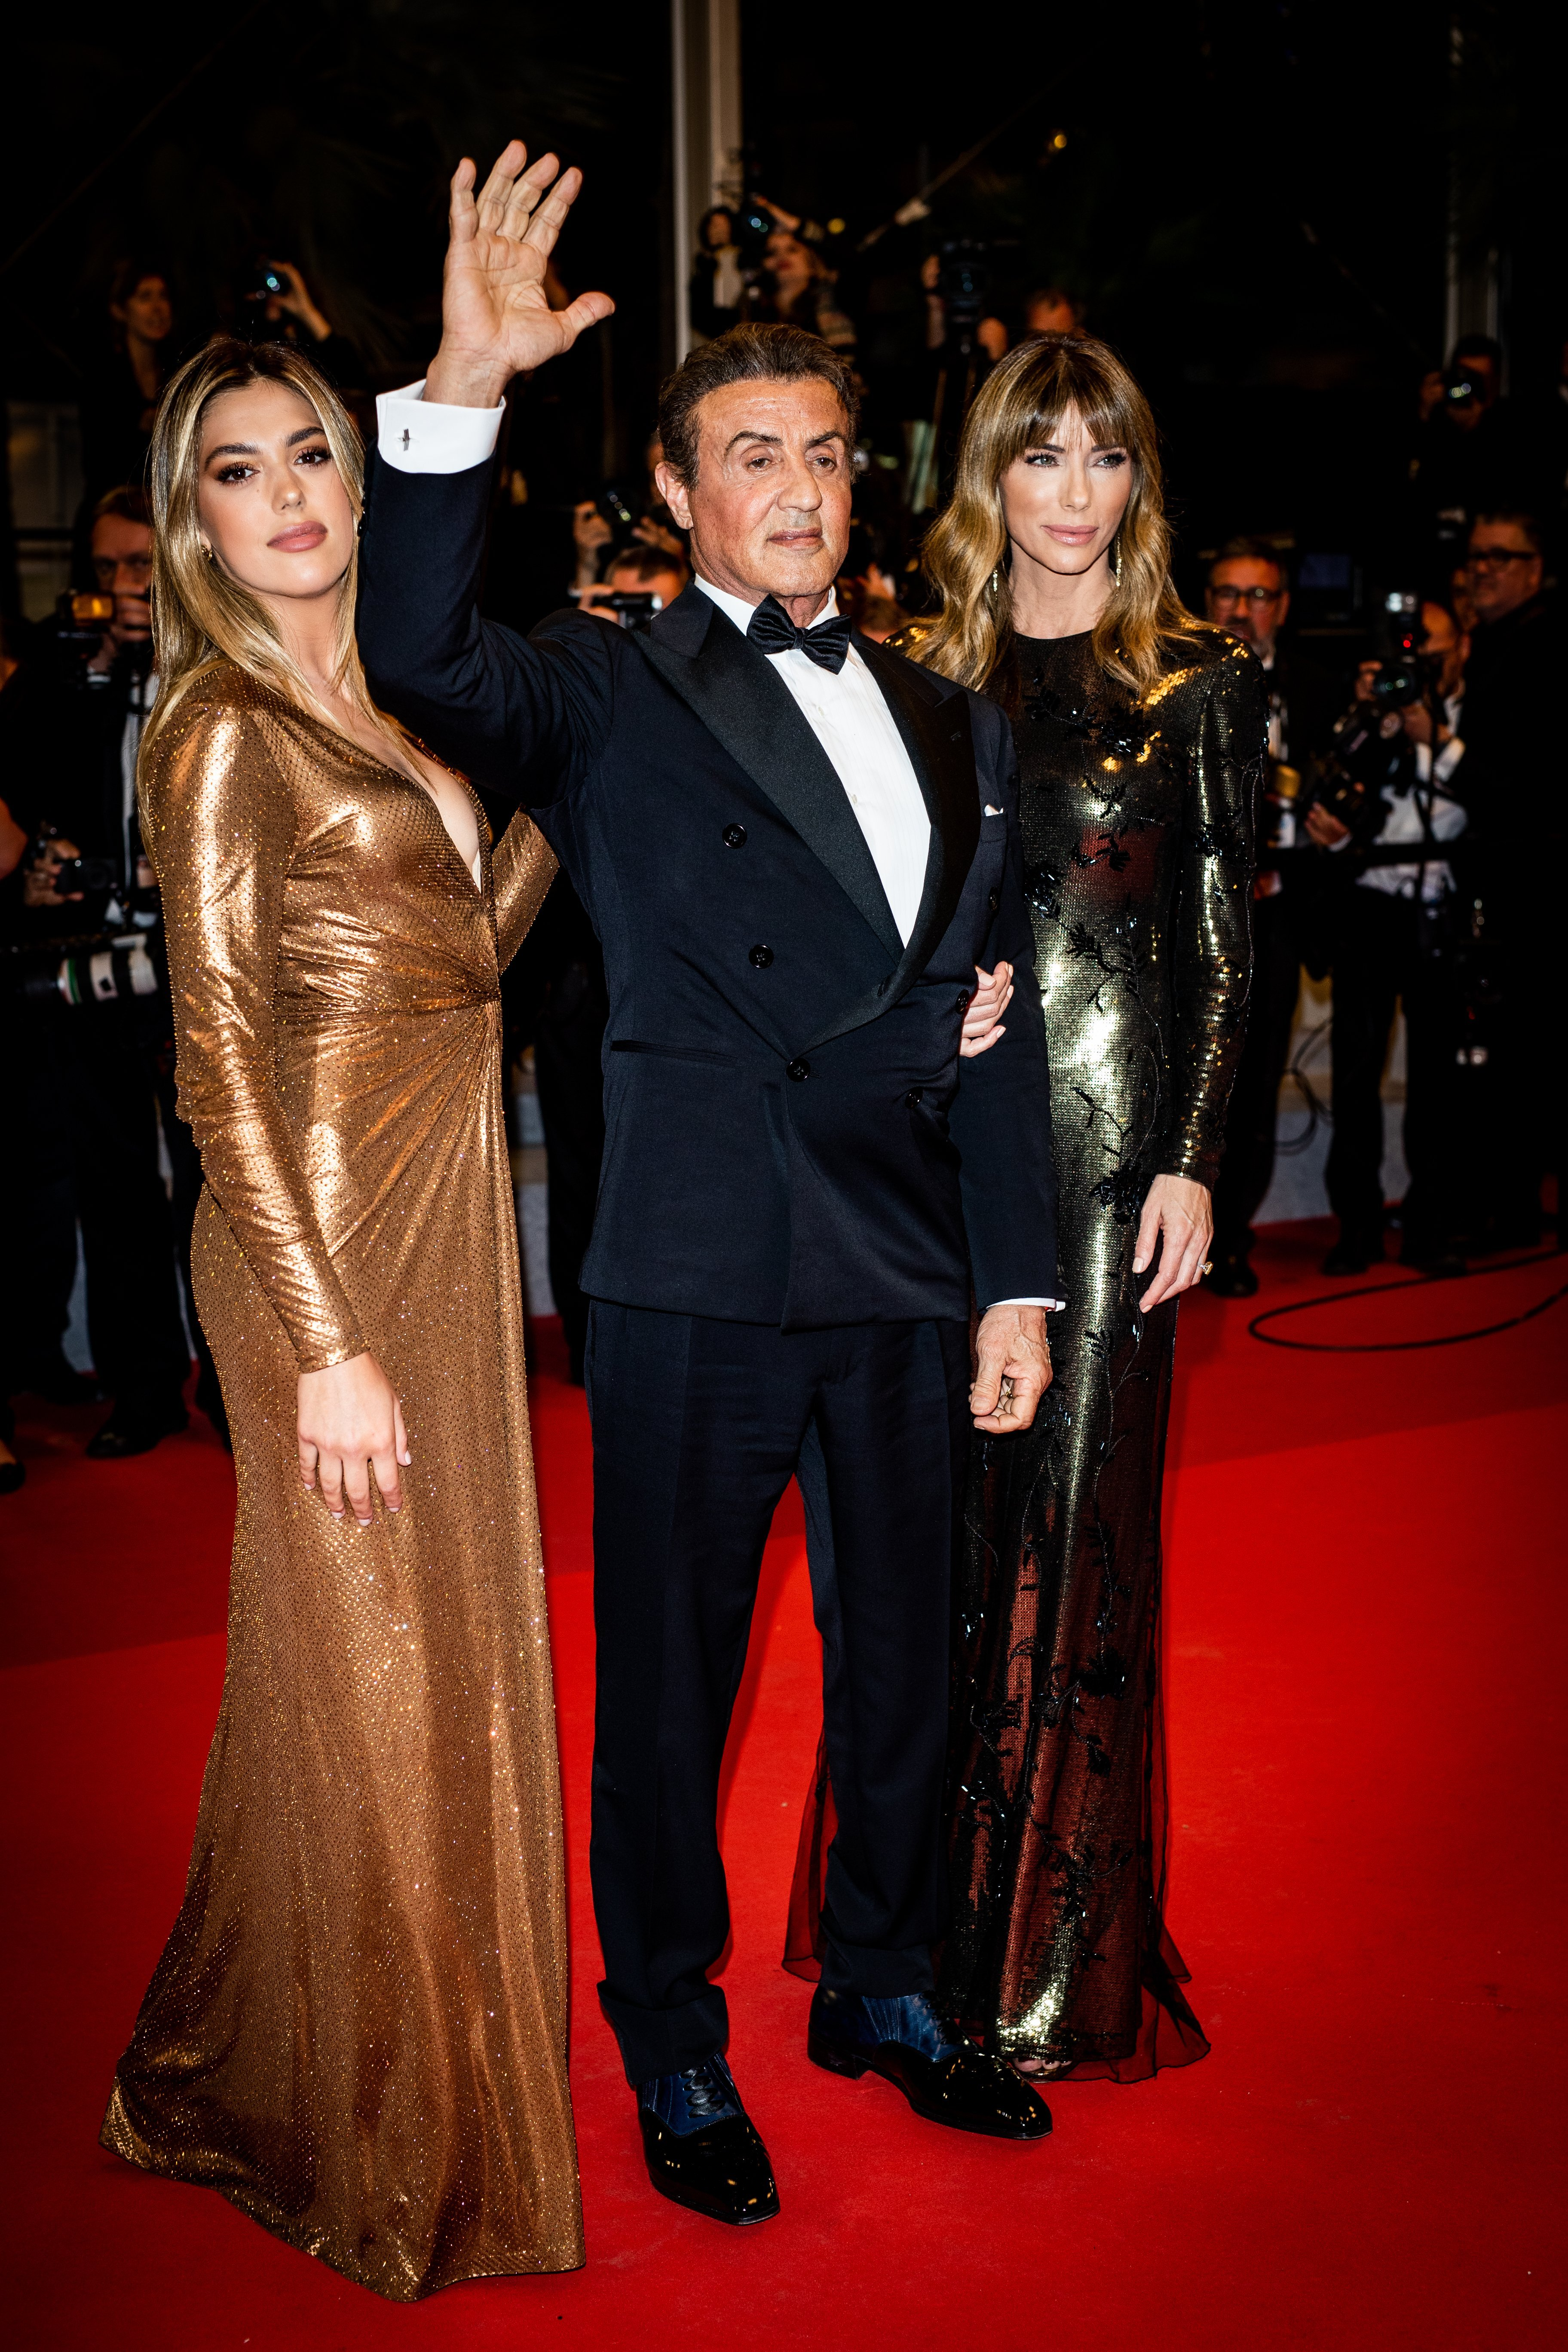 """Sylvester Stallone, Jennifer Flavin and Sistine Rose Stallone attend the screening of """"Rambo - Last Blood"""" during the 72nd annual Cannes Film Festival on May 24, 2019, in Cannes, France.   Source: Getty Images."""